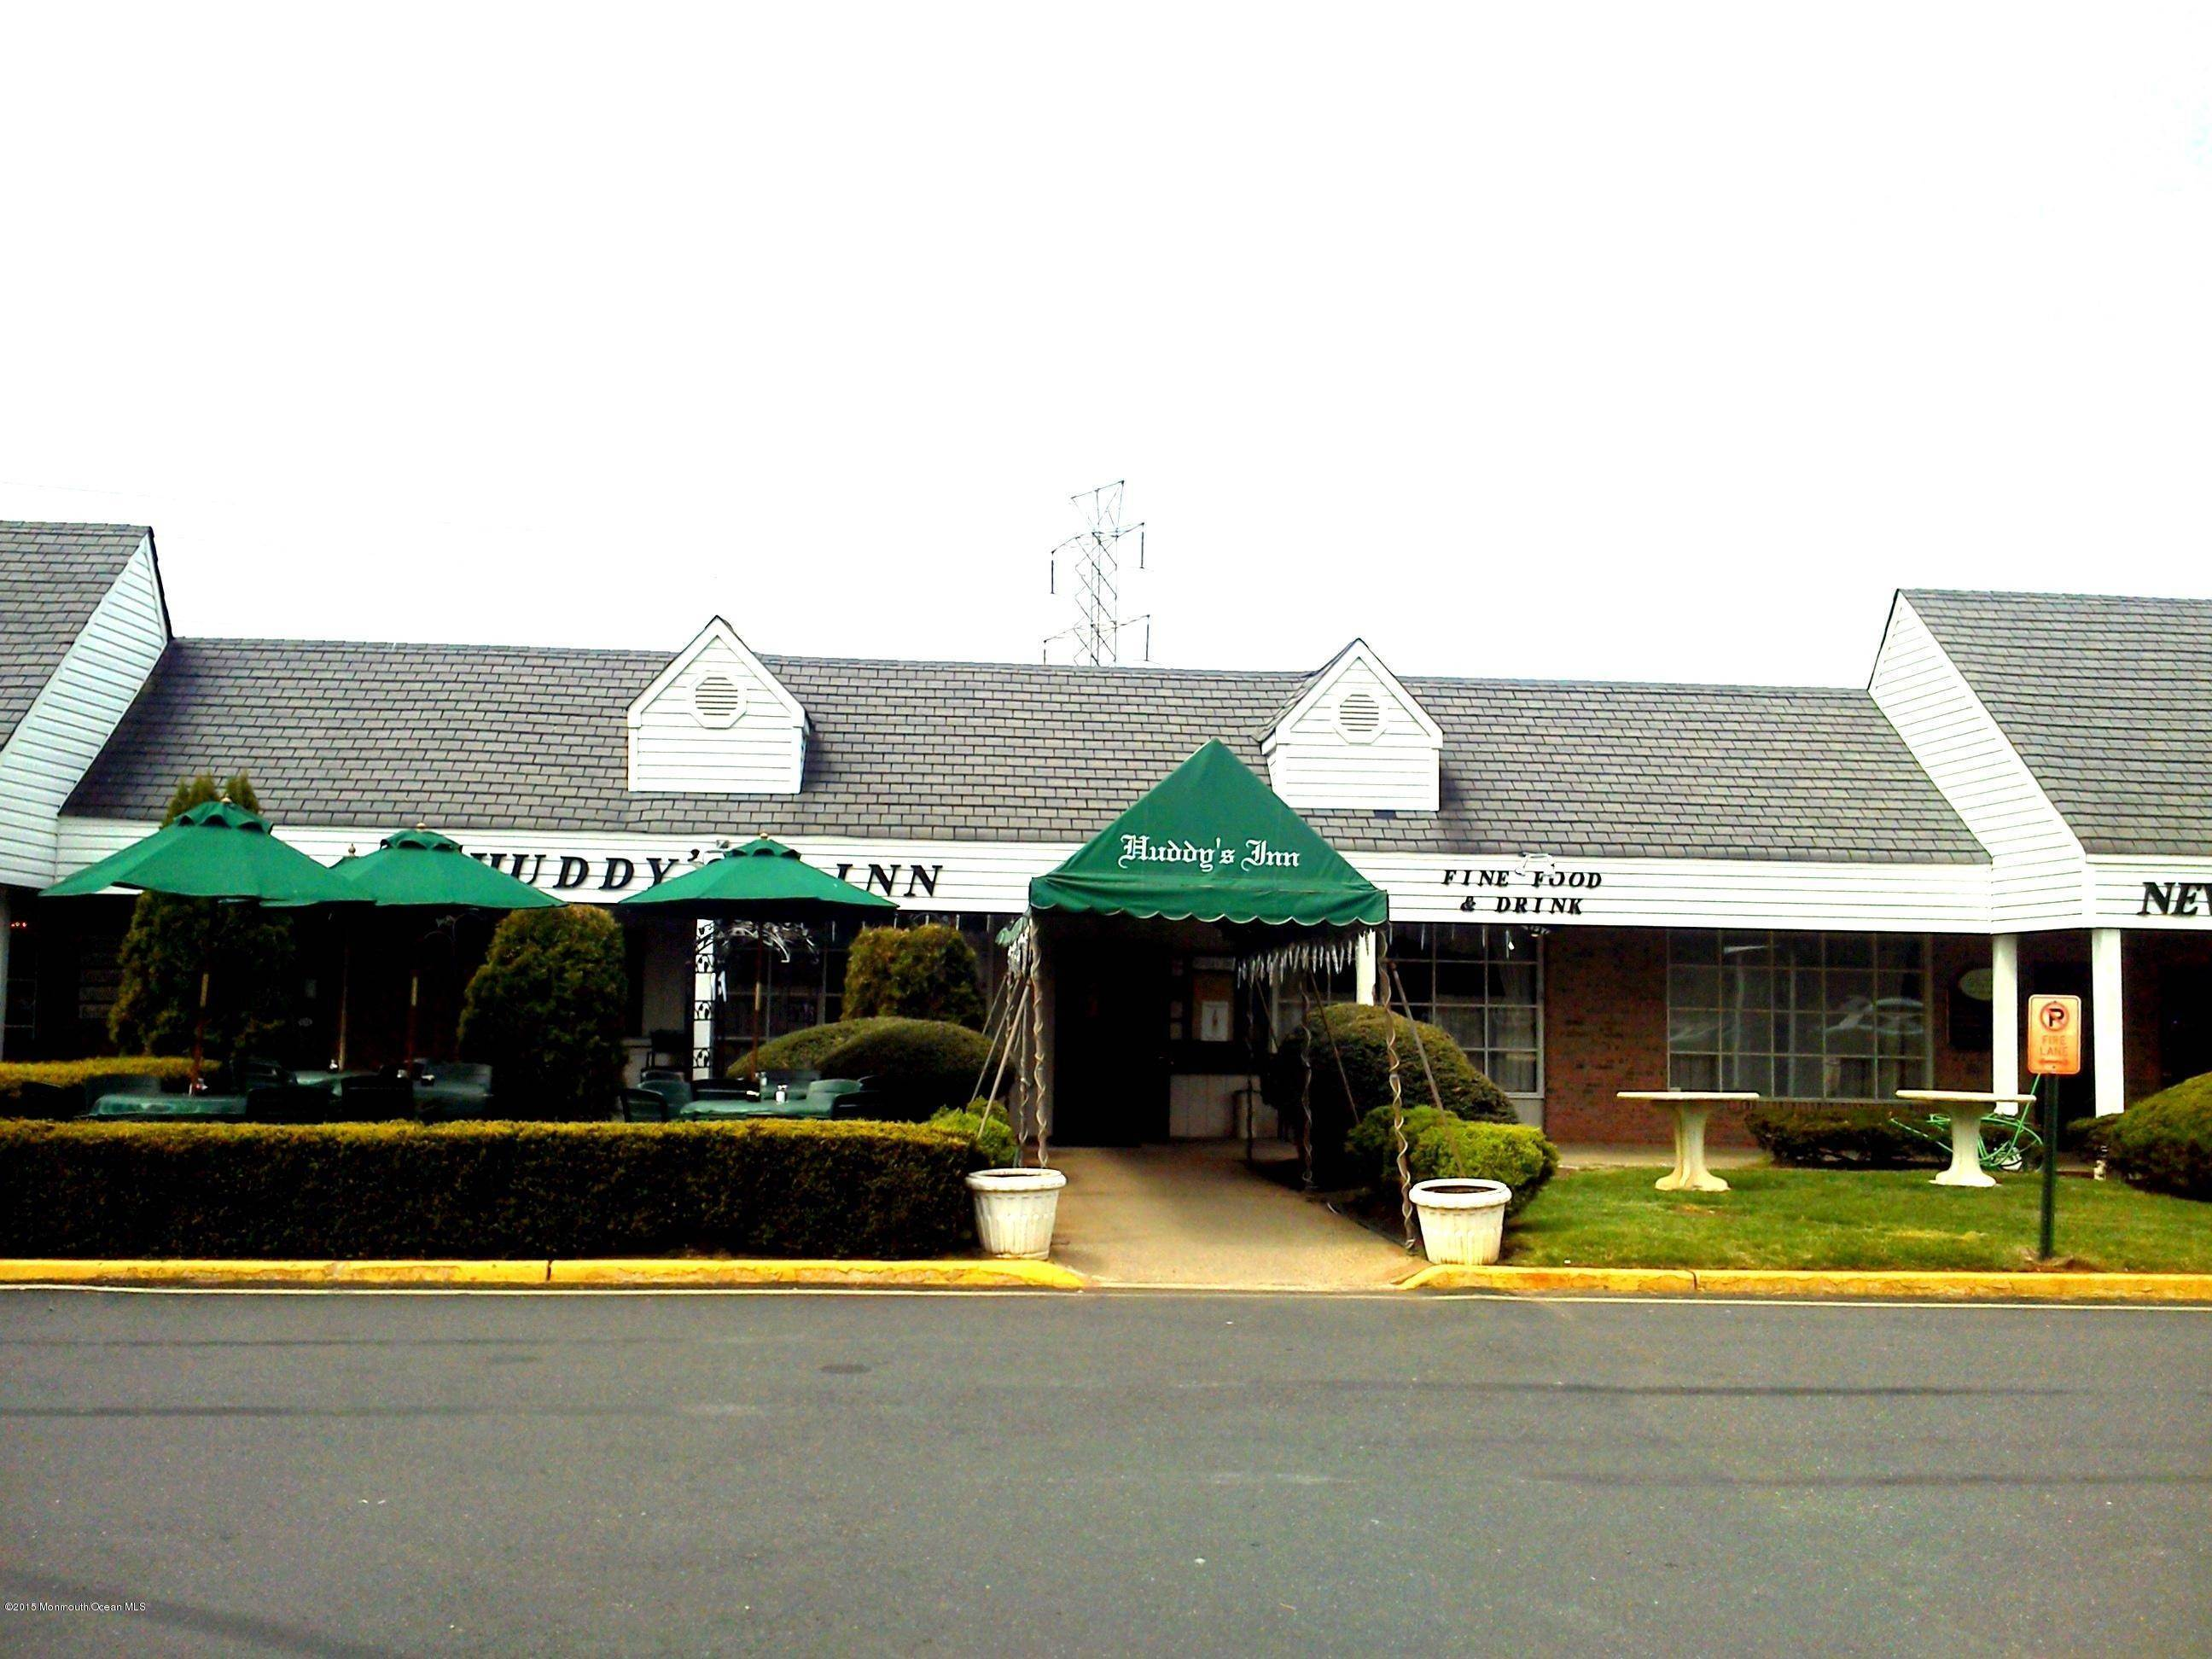 Comercial em 420 Route 34 Colts Neck, Nova Jersey 07722 Estados Unidos